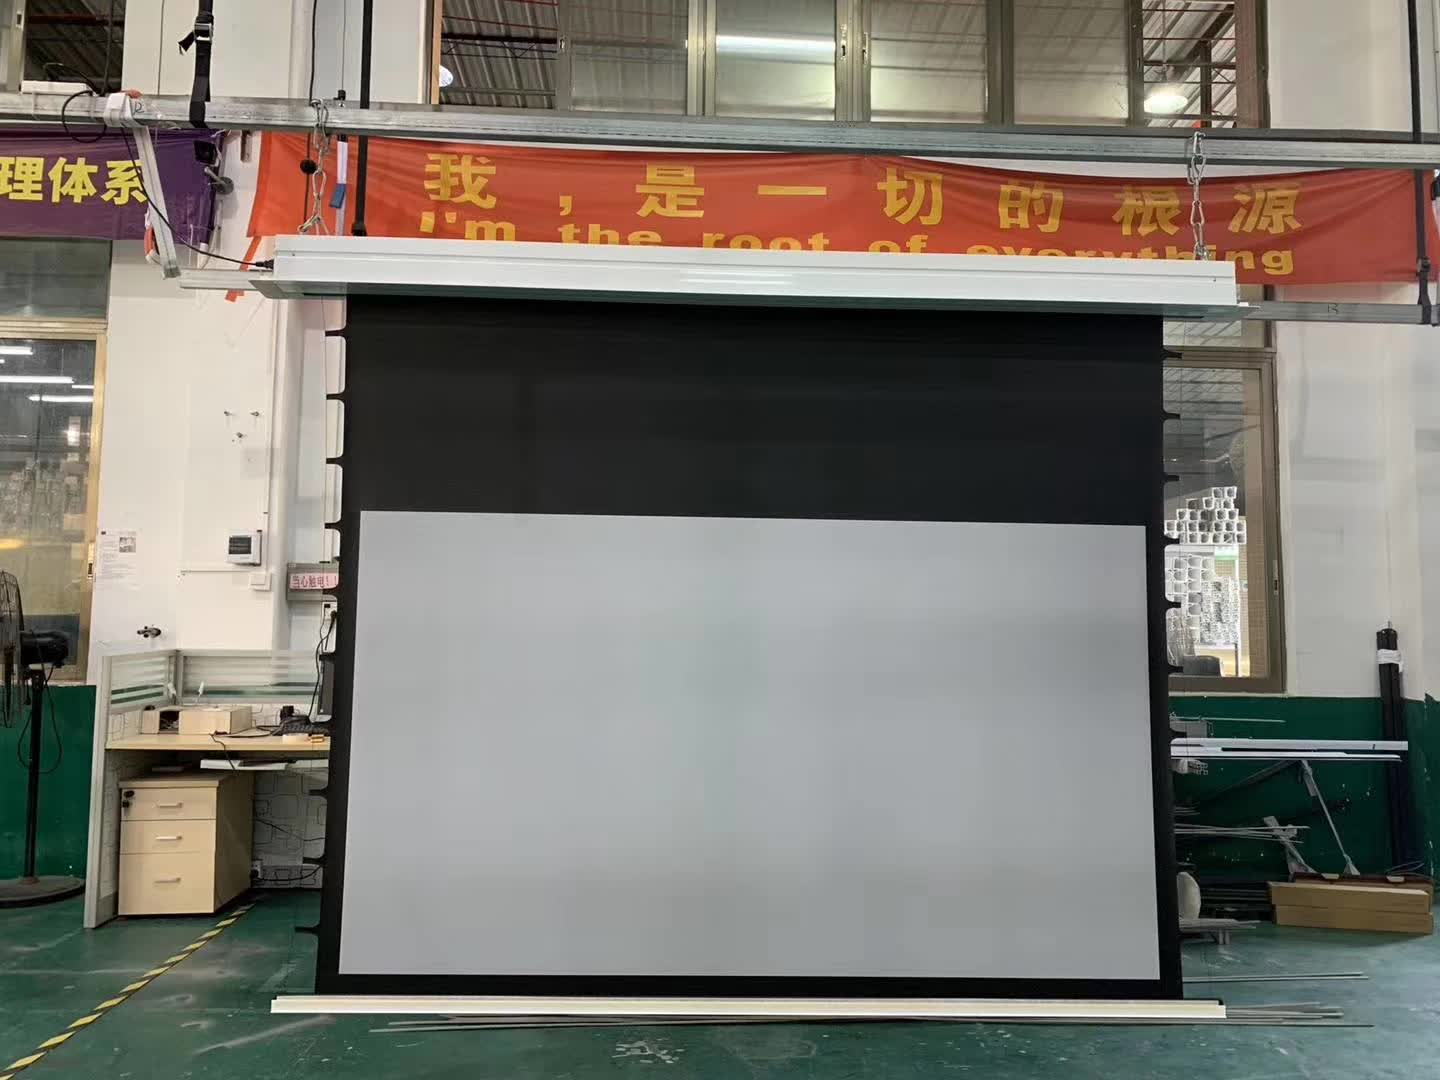 Premium built in recessed ceilling tab tensioned motorized projection screen with UHD grey screens